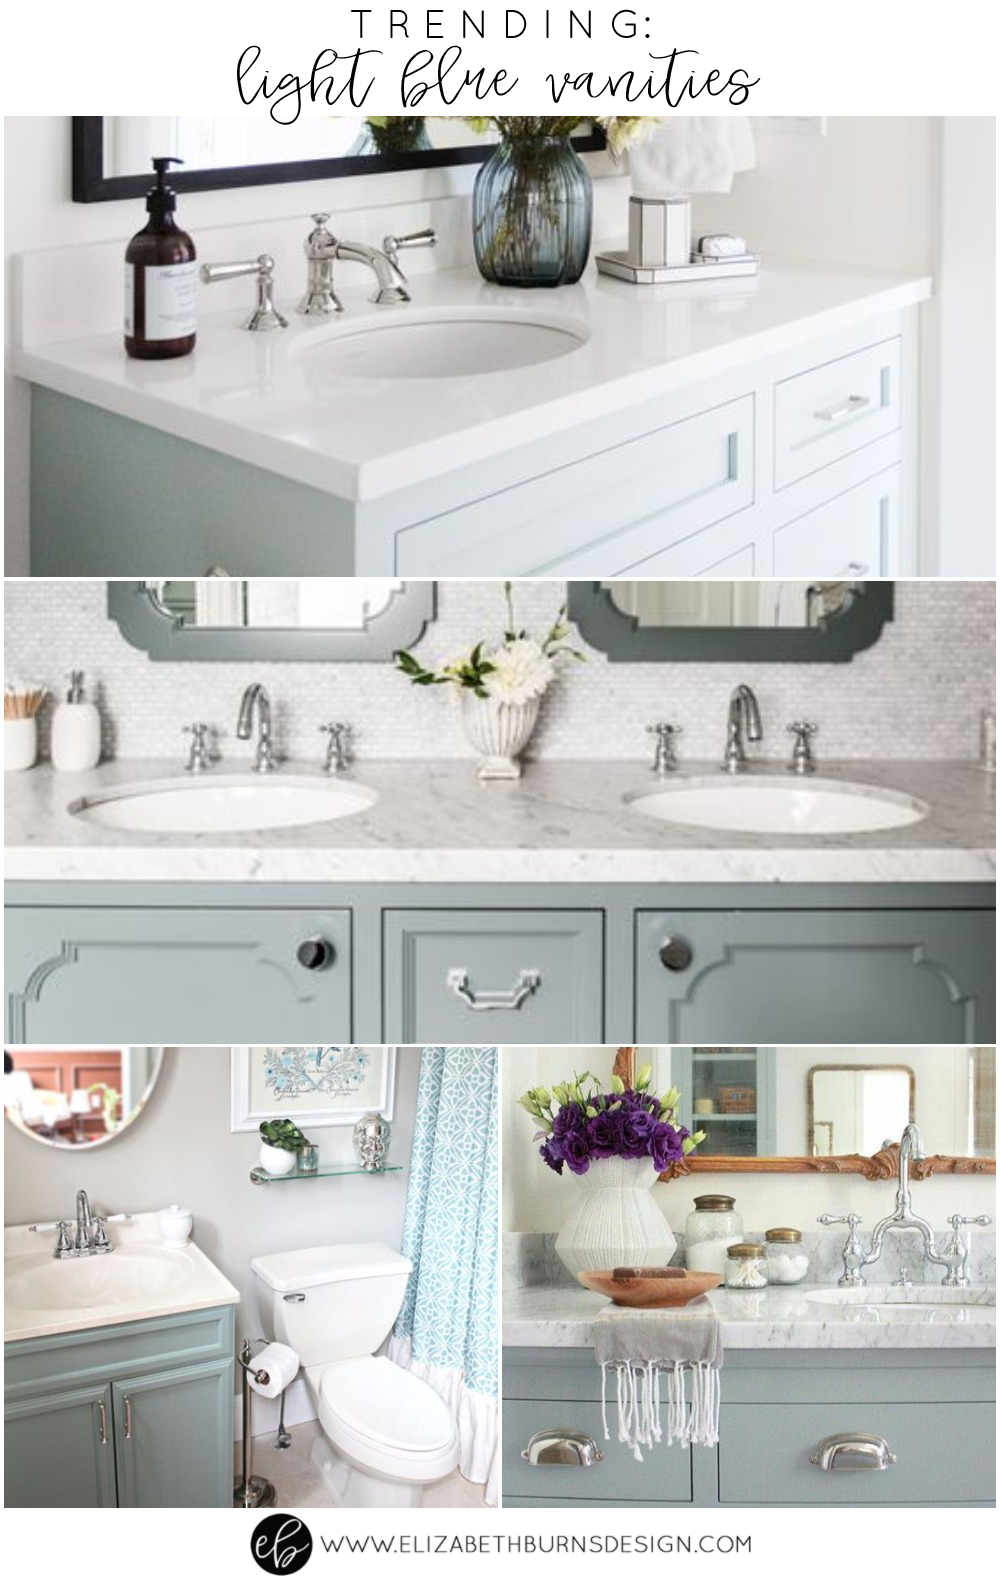 Trending Light Blue Vanities Elizabeth Burns Design Raleigh NC - Bathroom vanities raleigh